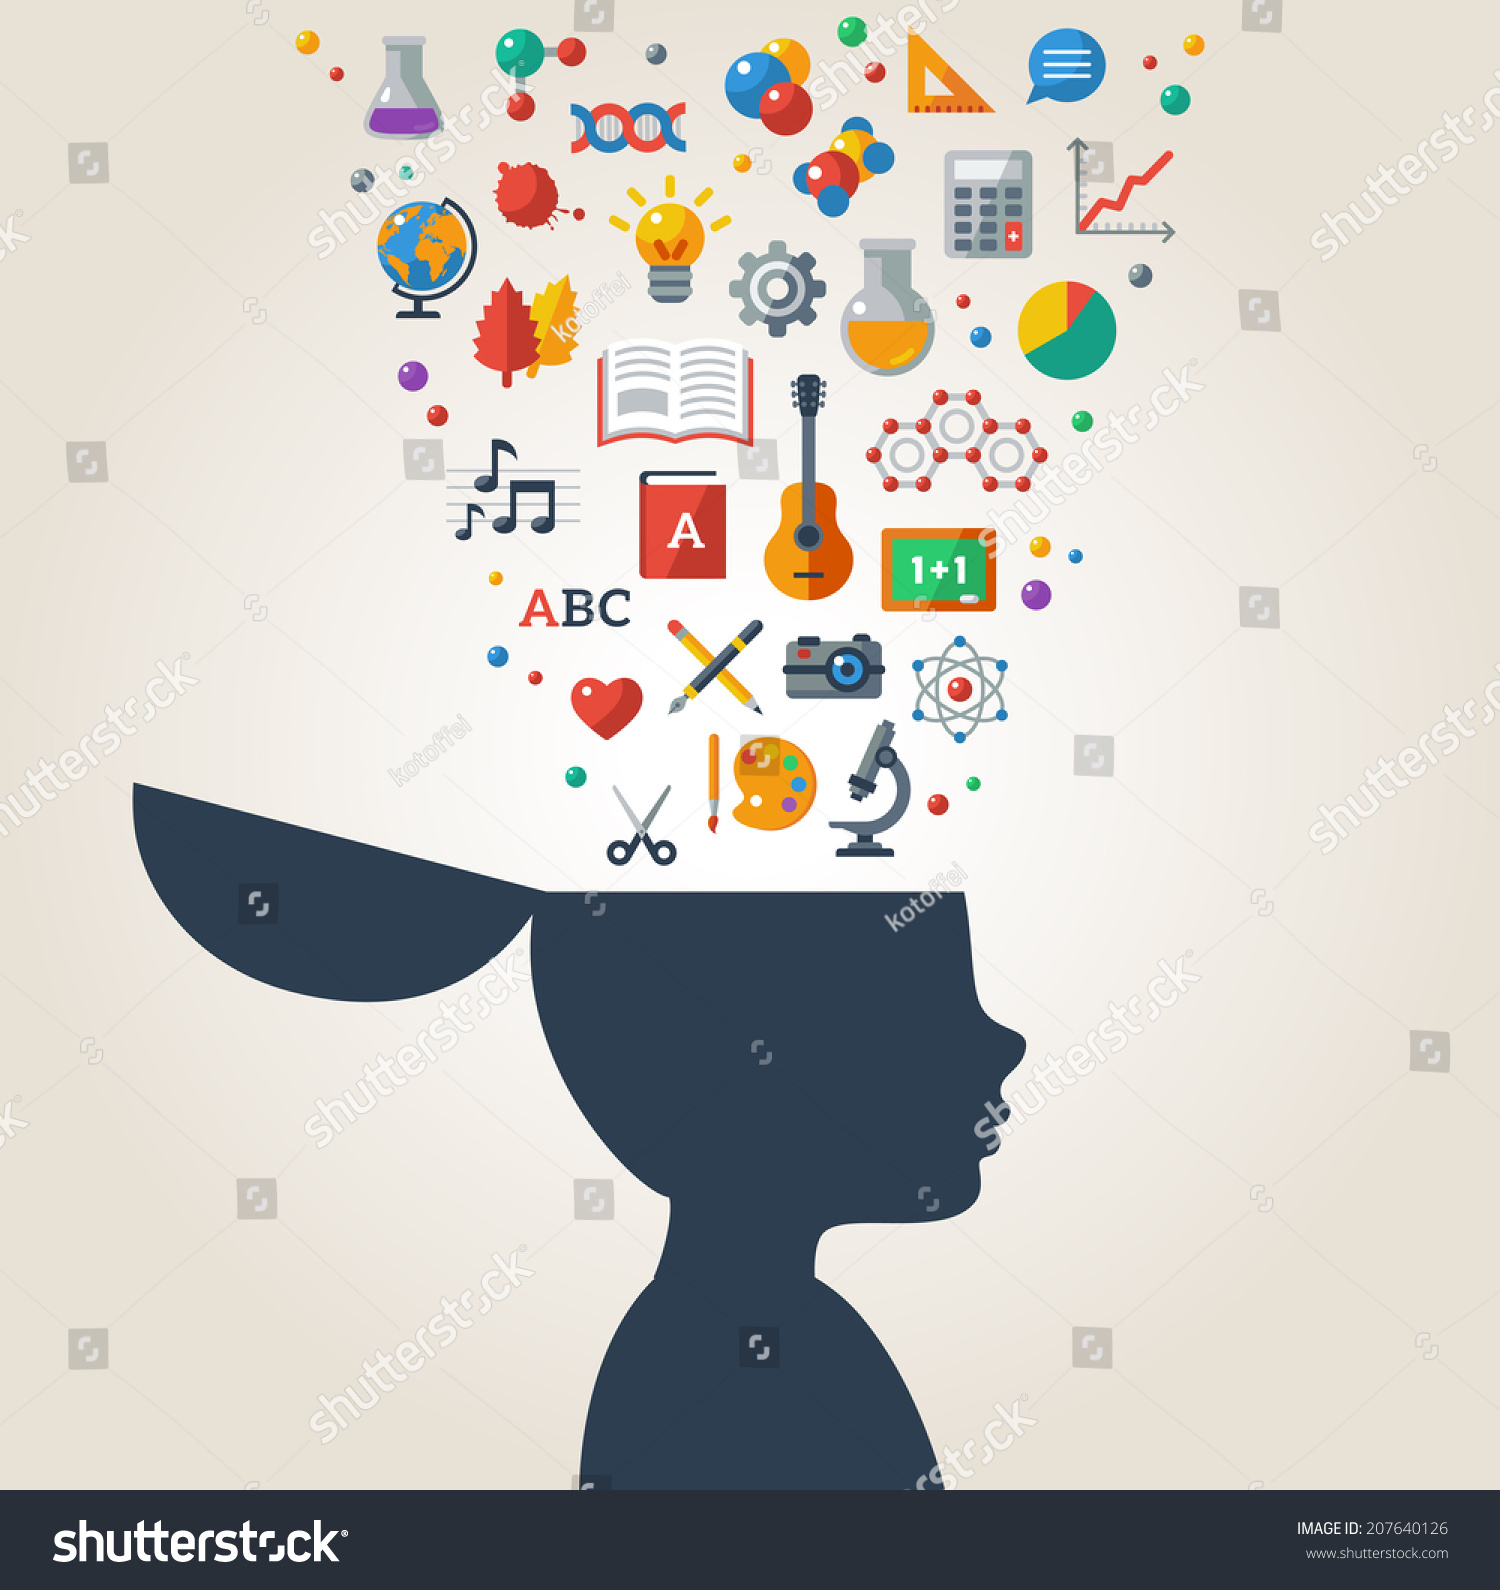 Education Symbols Clip Art Pictures To Pin On Pinterest